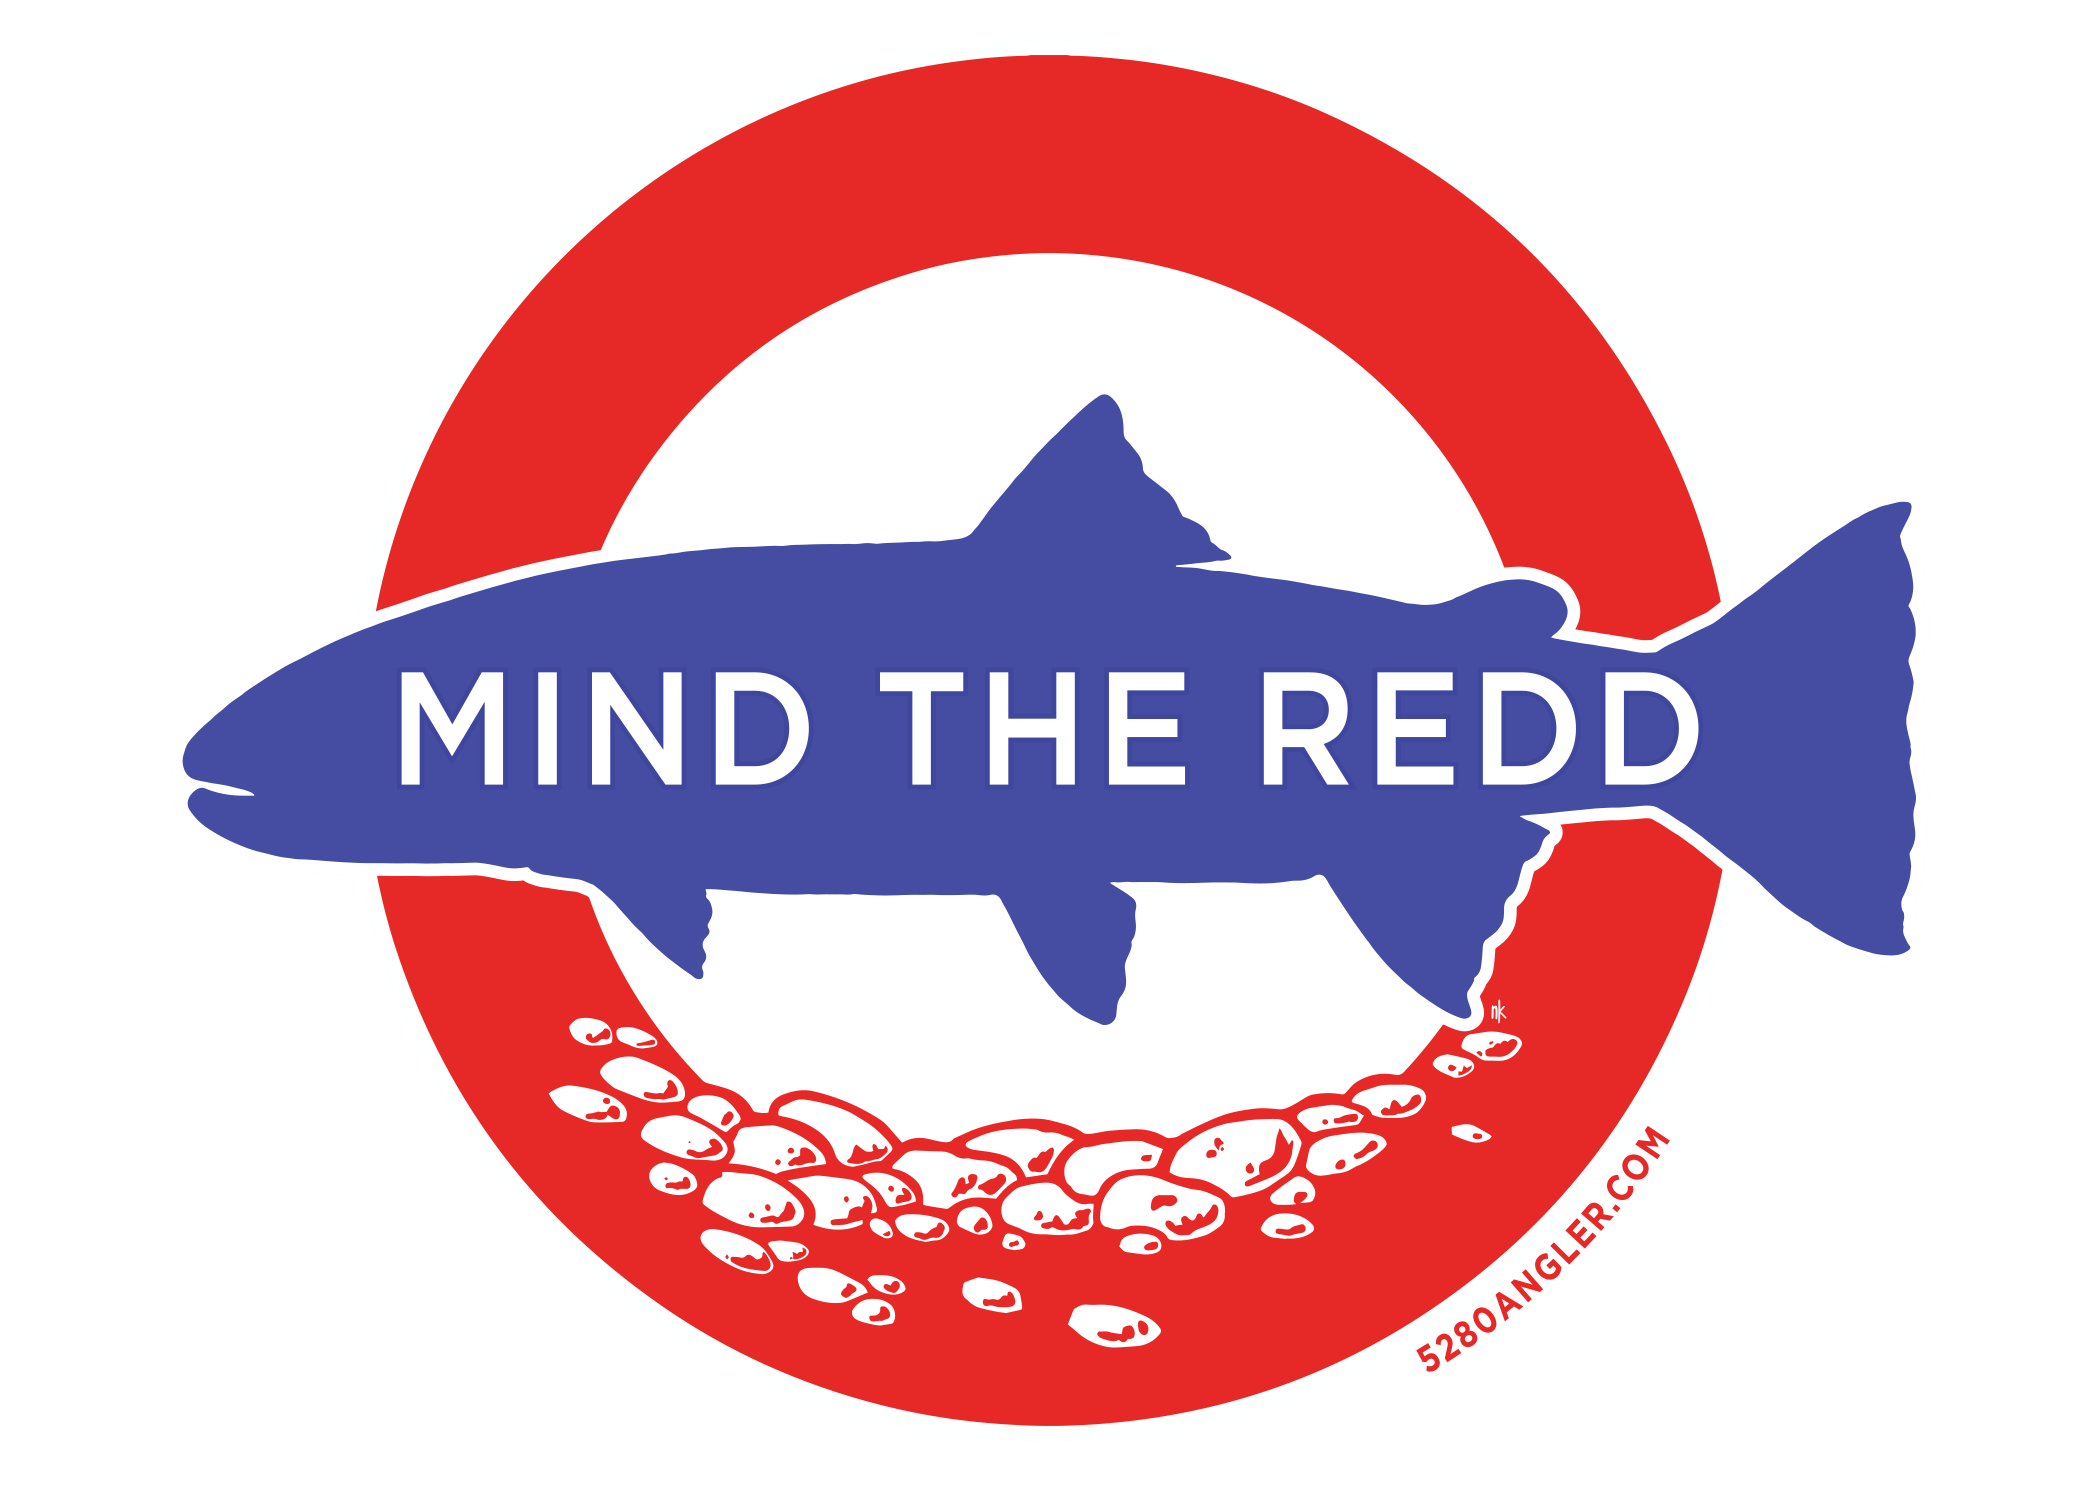 MIND THE REDD ™ DECAL